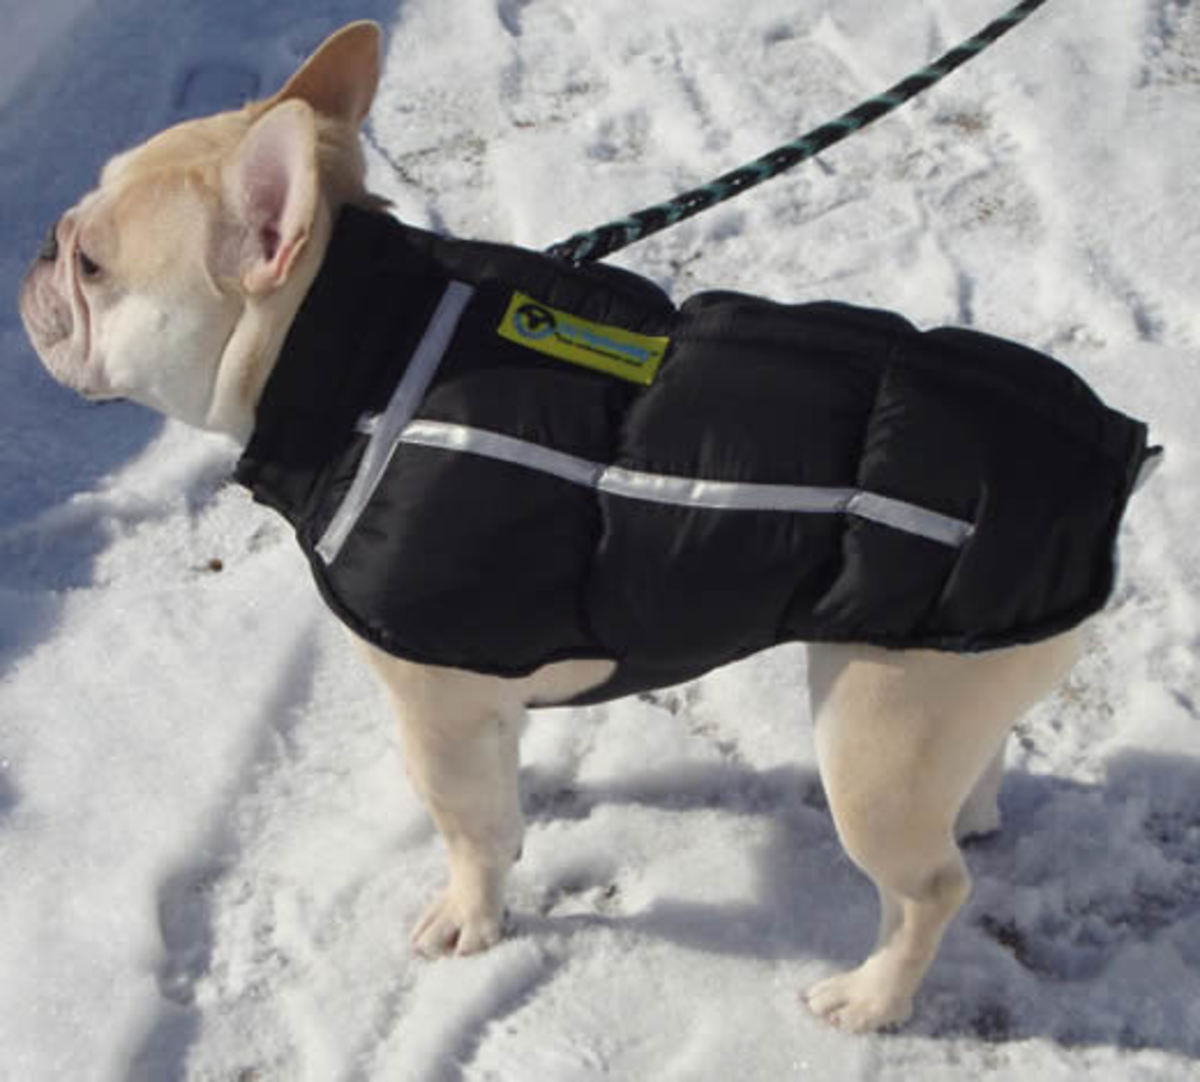 Teddy enjoyed his ChillyBuddy Winter Jacket in the snow.